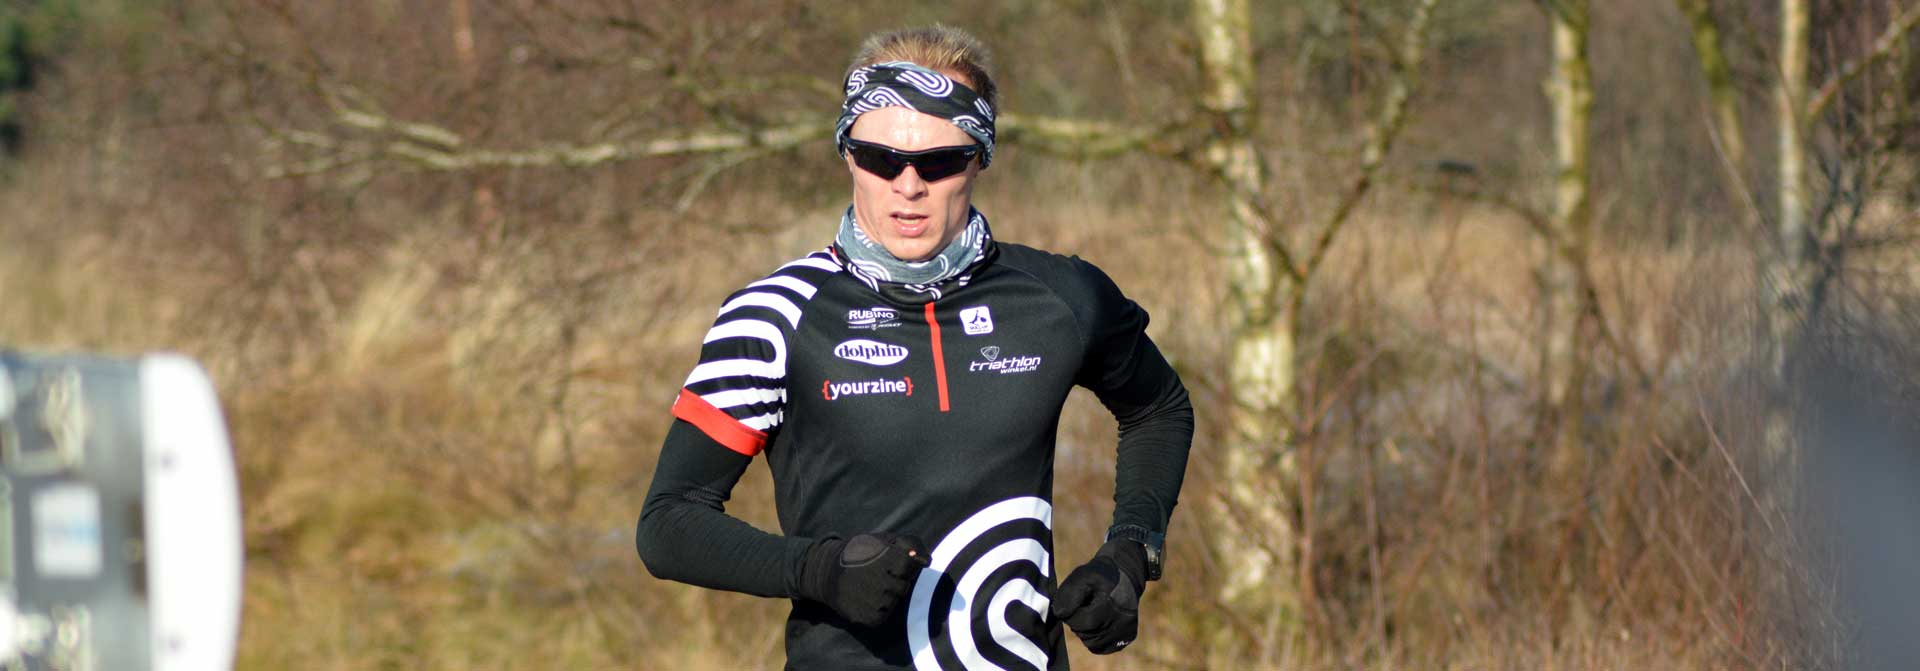 Cross Duathlon Ameland persbericht 2017: Mark Hamersma